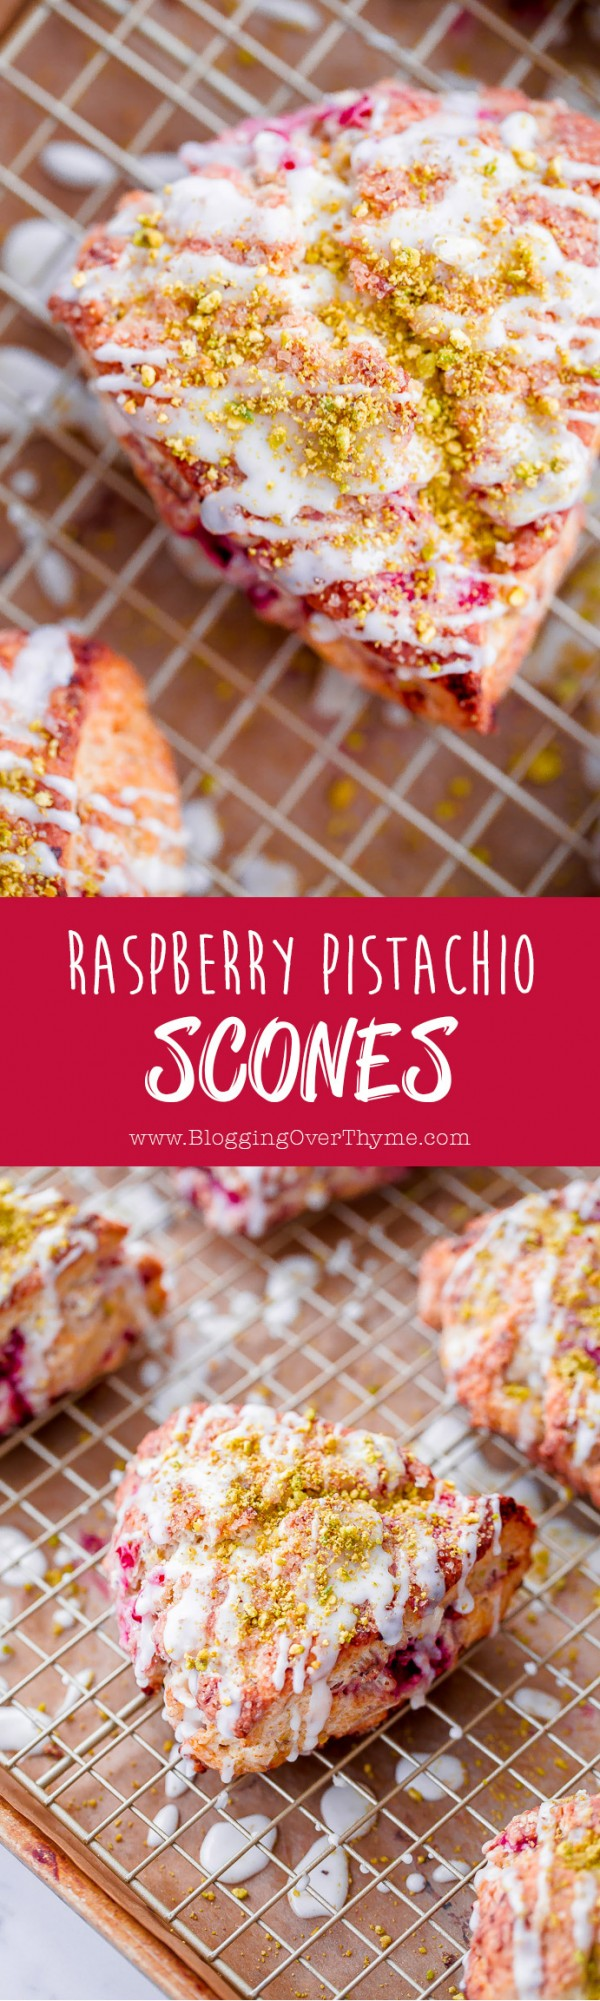 Raspberry Pistachio Scones with Lemon Glaze. So delicious and flaky!